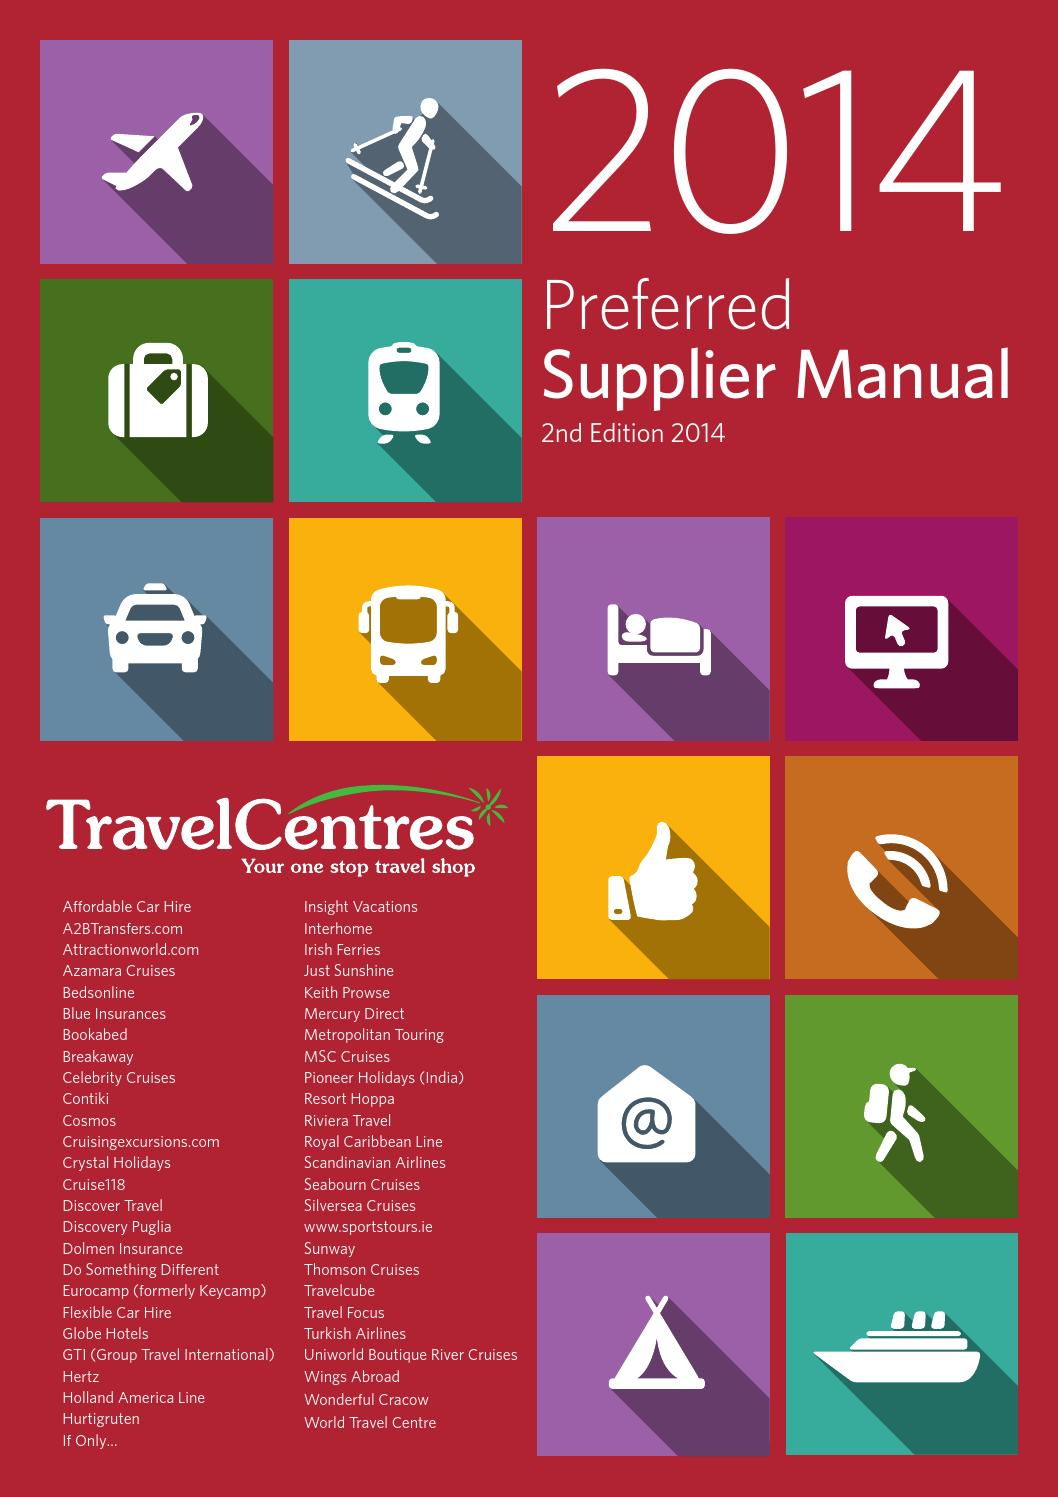 56689ddbed7e6 Travel Centres 2014 Preferred Supplier Manual by Travel Centres - issuu